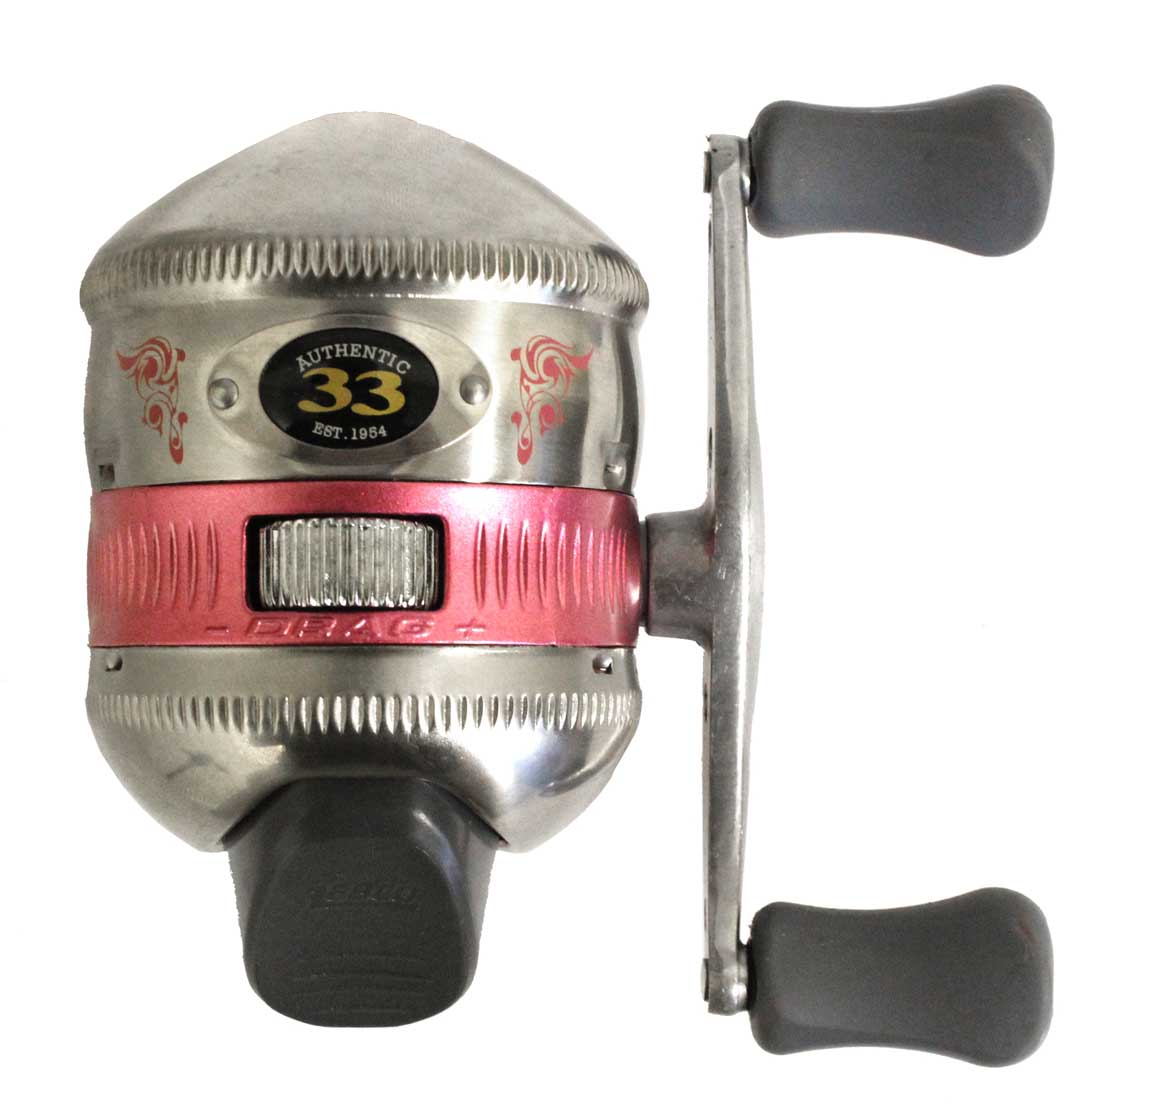 Zebco Authentic 33 Ladies Spincast Reel_1.jpg